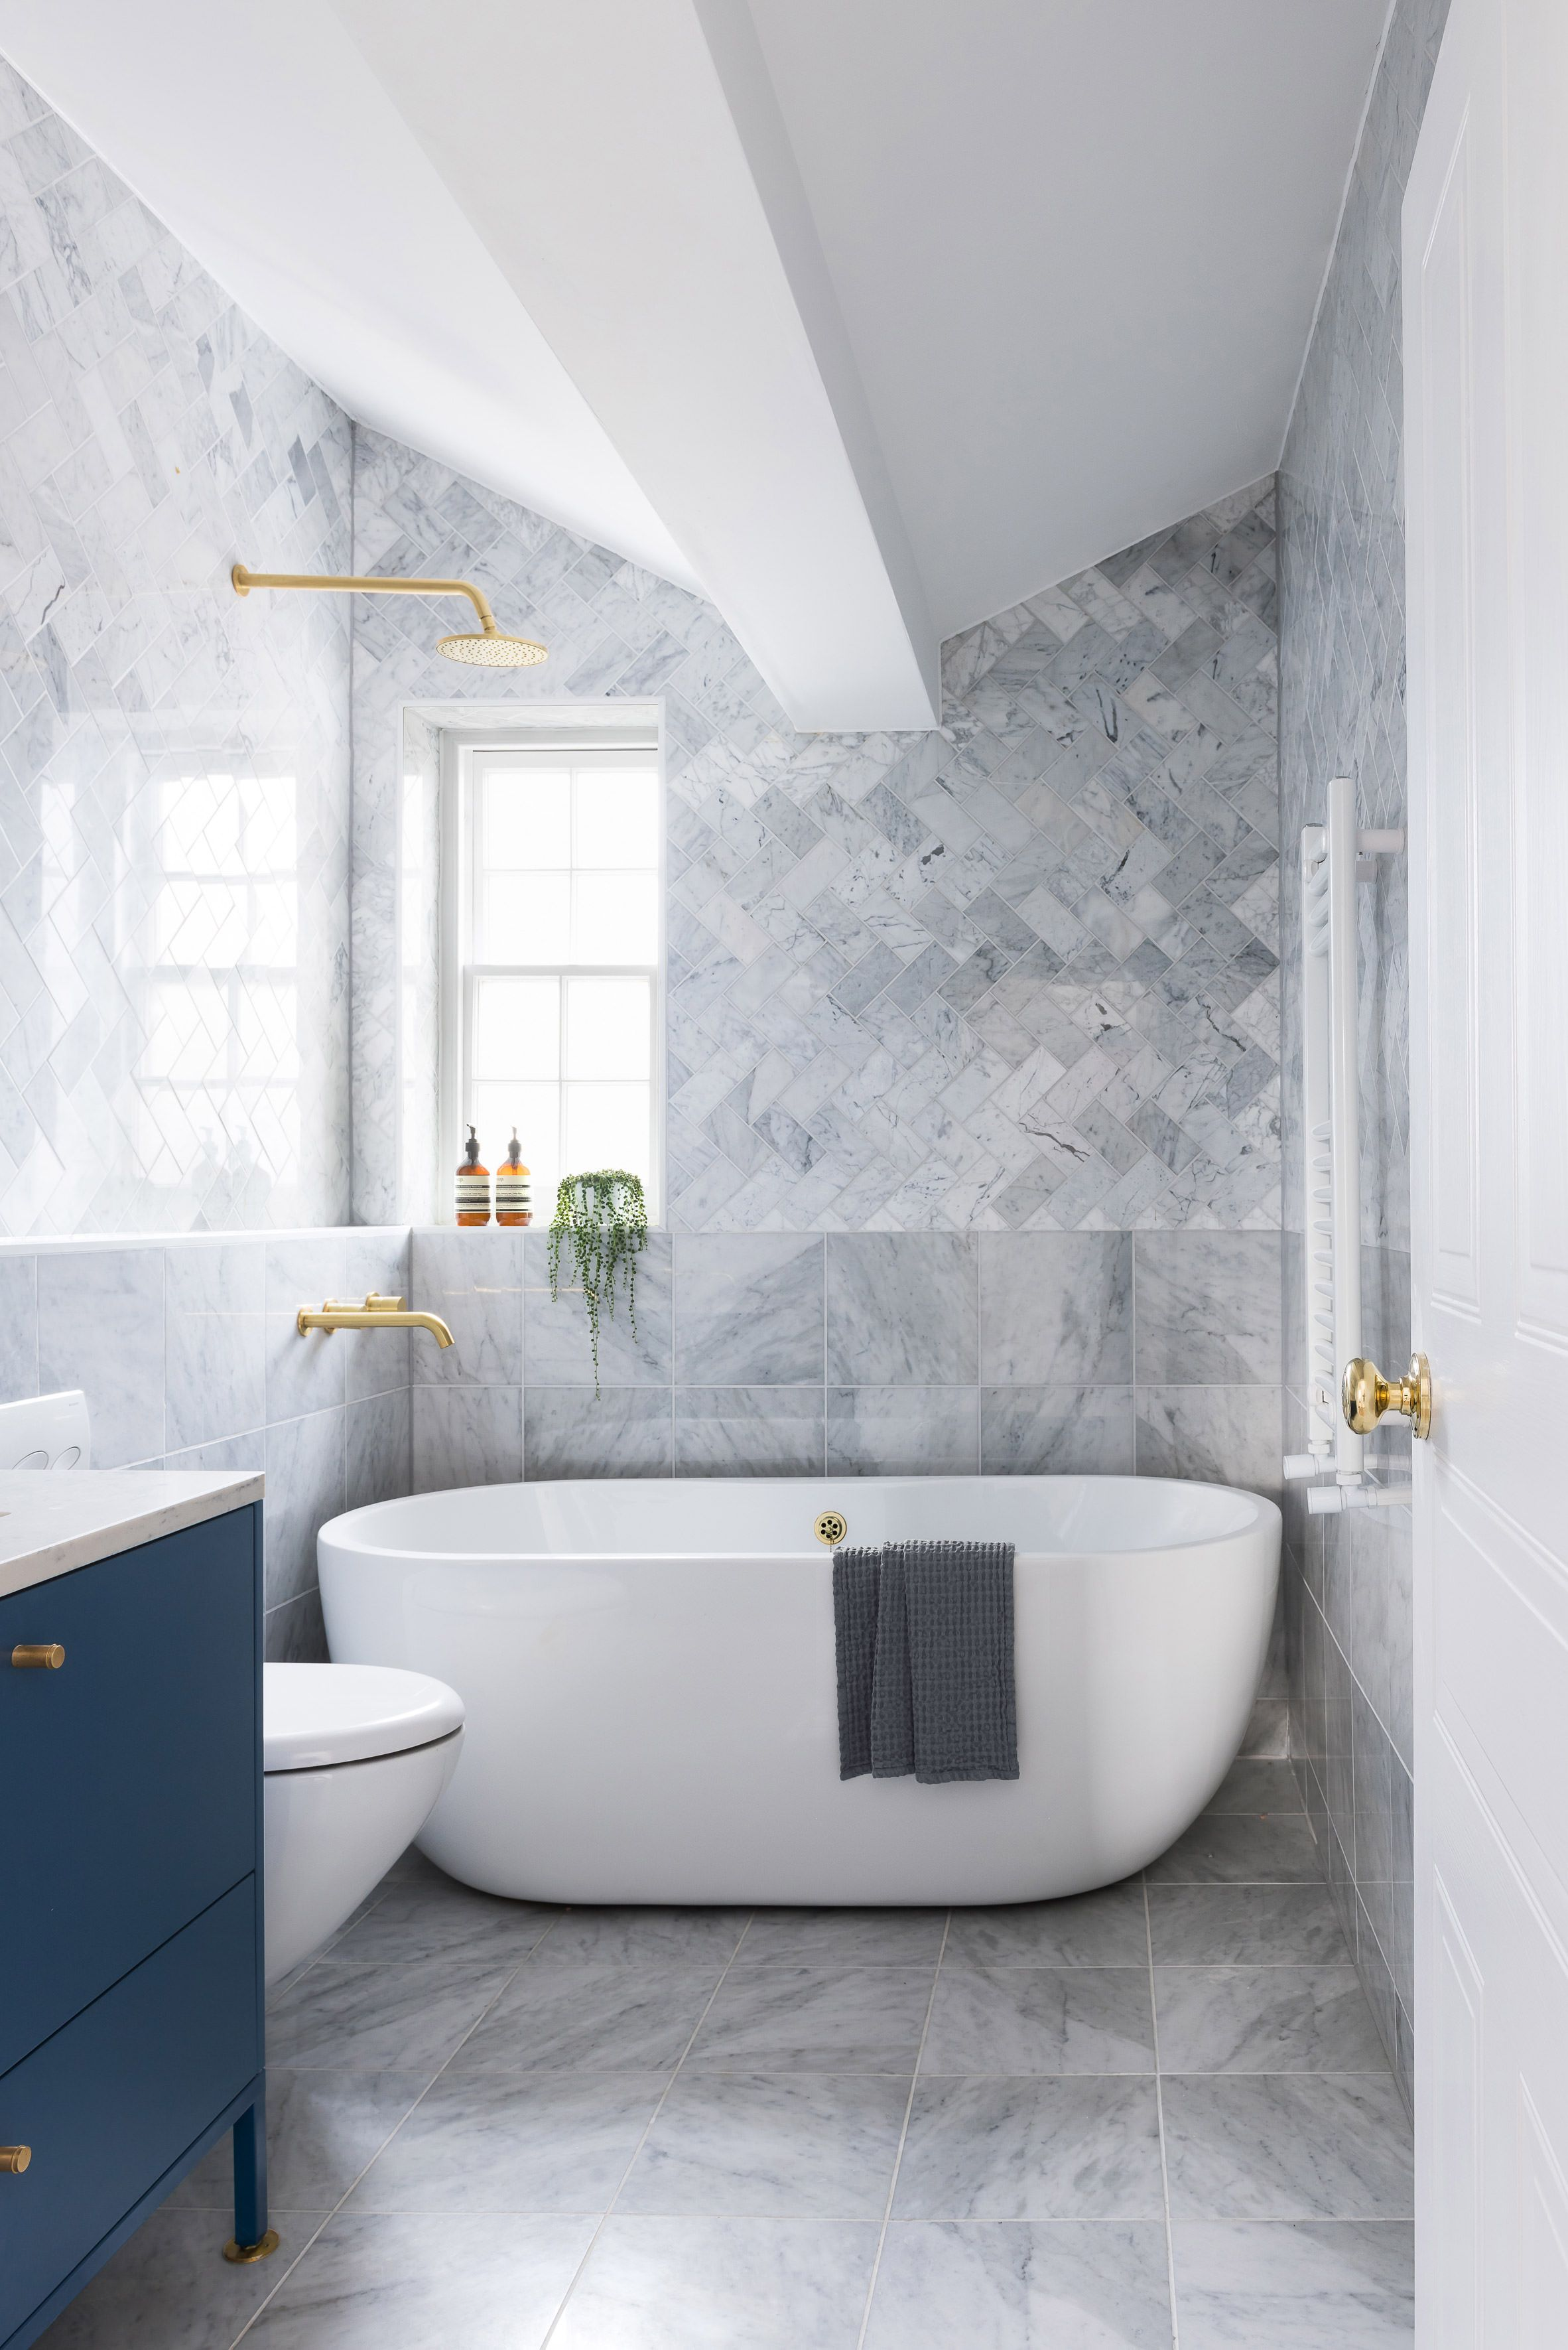 Bathroom With Herringbone Patterned Marble Tiles And Brass Tapware In A Renovated Townh Bathroom Design Inspiration Modern Bathroom Tile Modern Bathroom Design